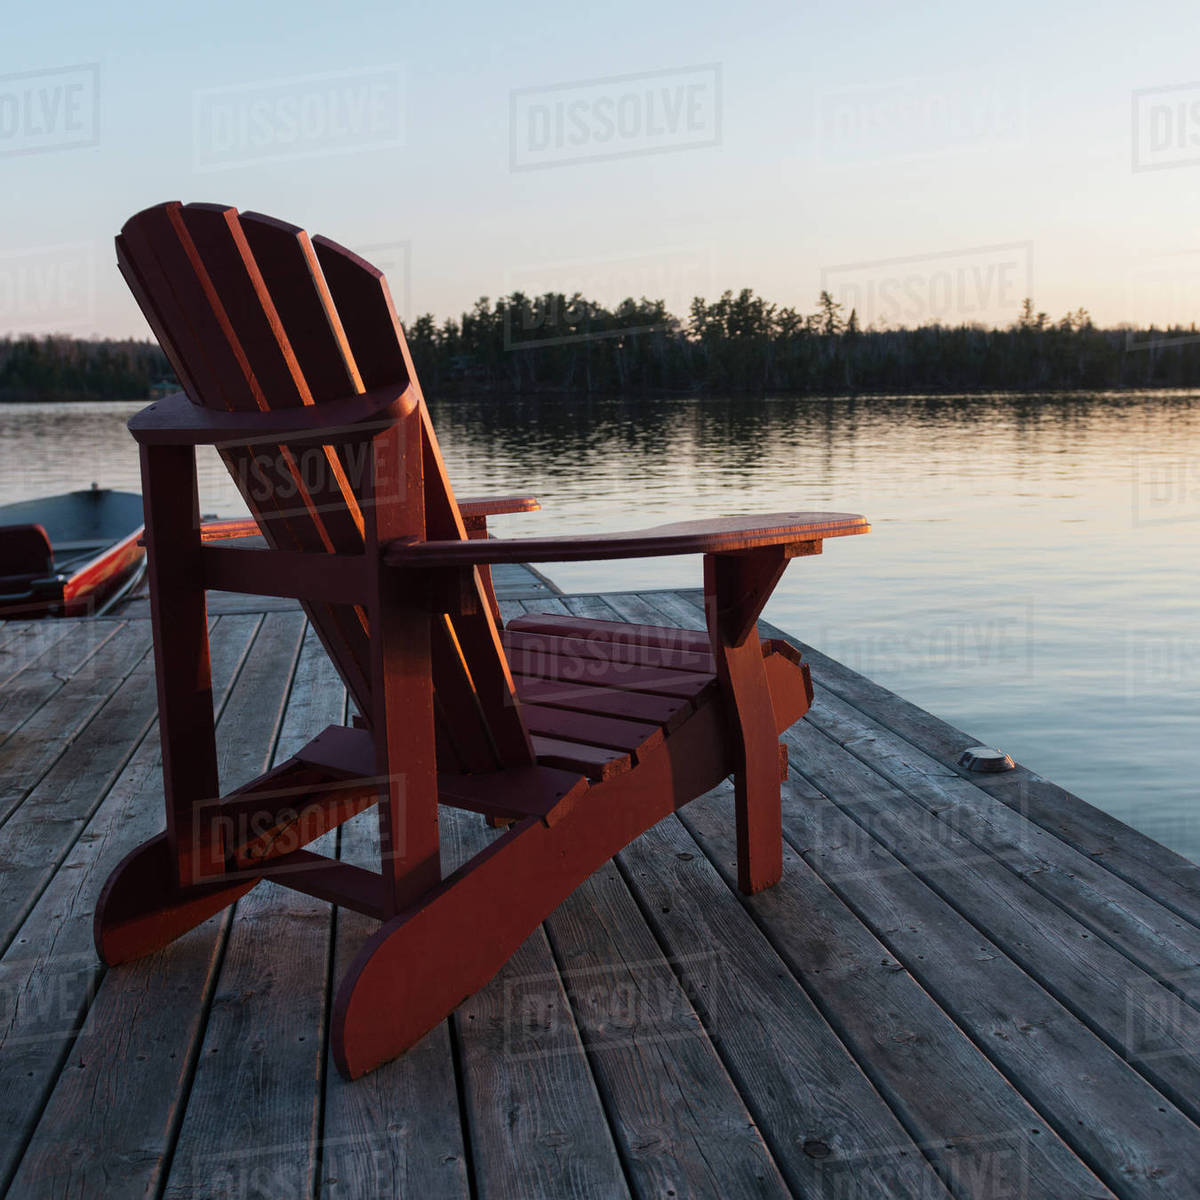 A Red Adirondack Chair Sitting On A Wooden Dock On A Lake At Sunset; Lake  Of The Woods, Ontario, Canada